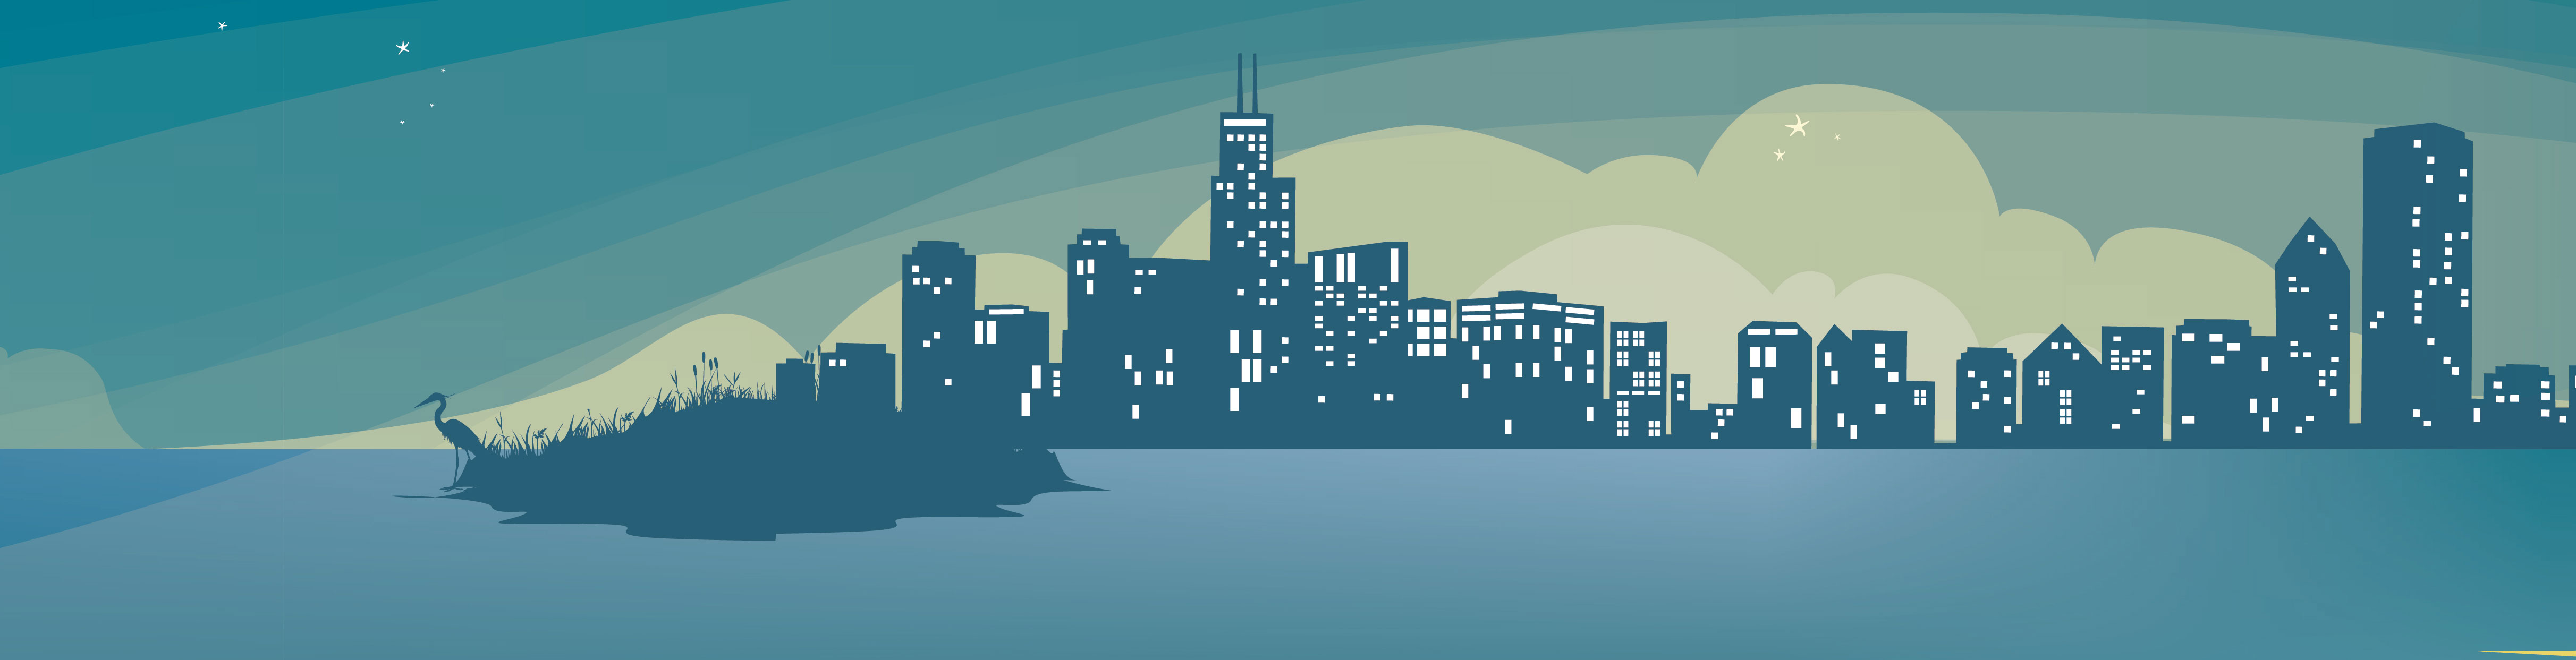 A small section of header illustration, featuring the chicago skyline as evening comes in and the buildings' windows light up.